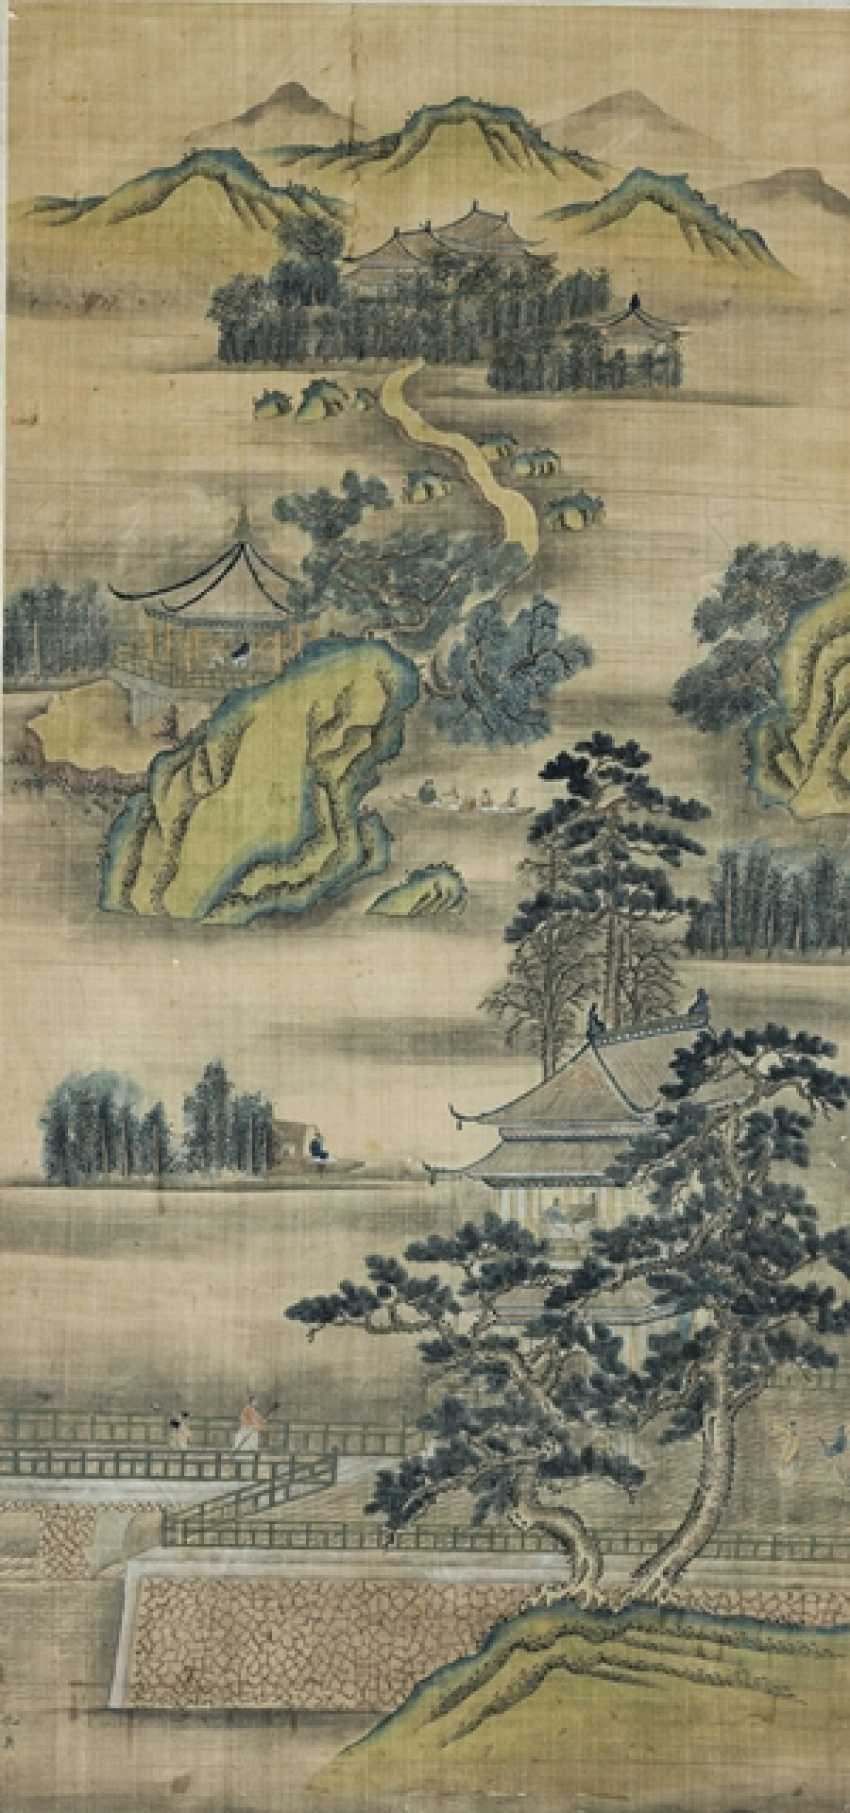 Anonymous painting of a landscape with a Palace - photo 1